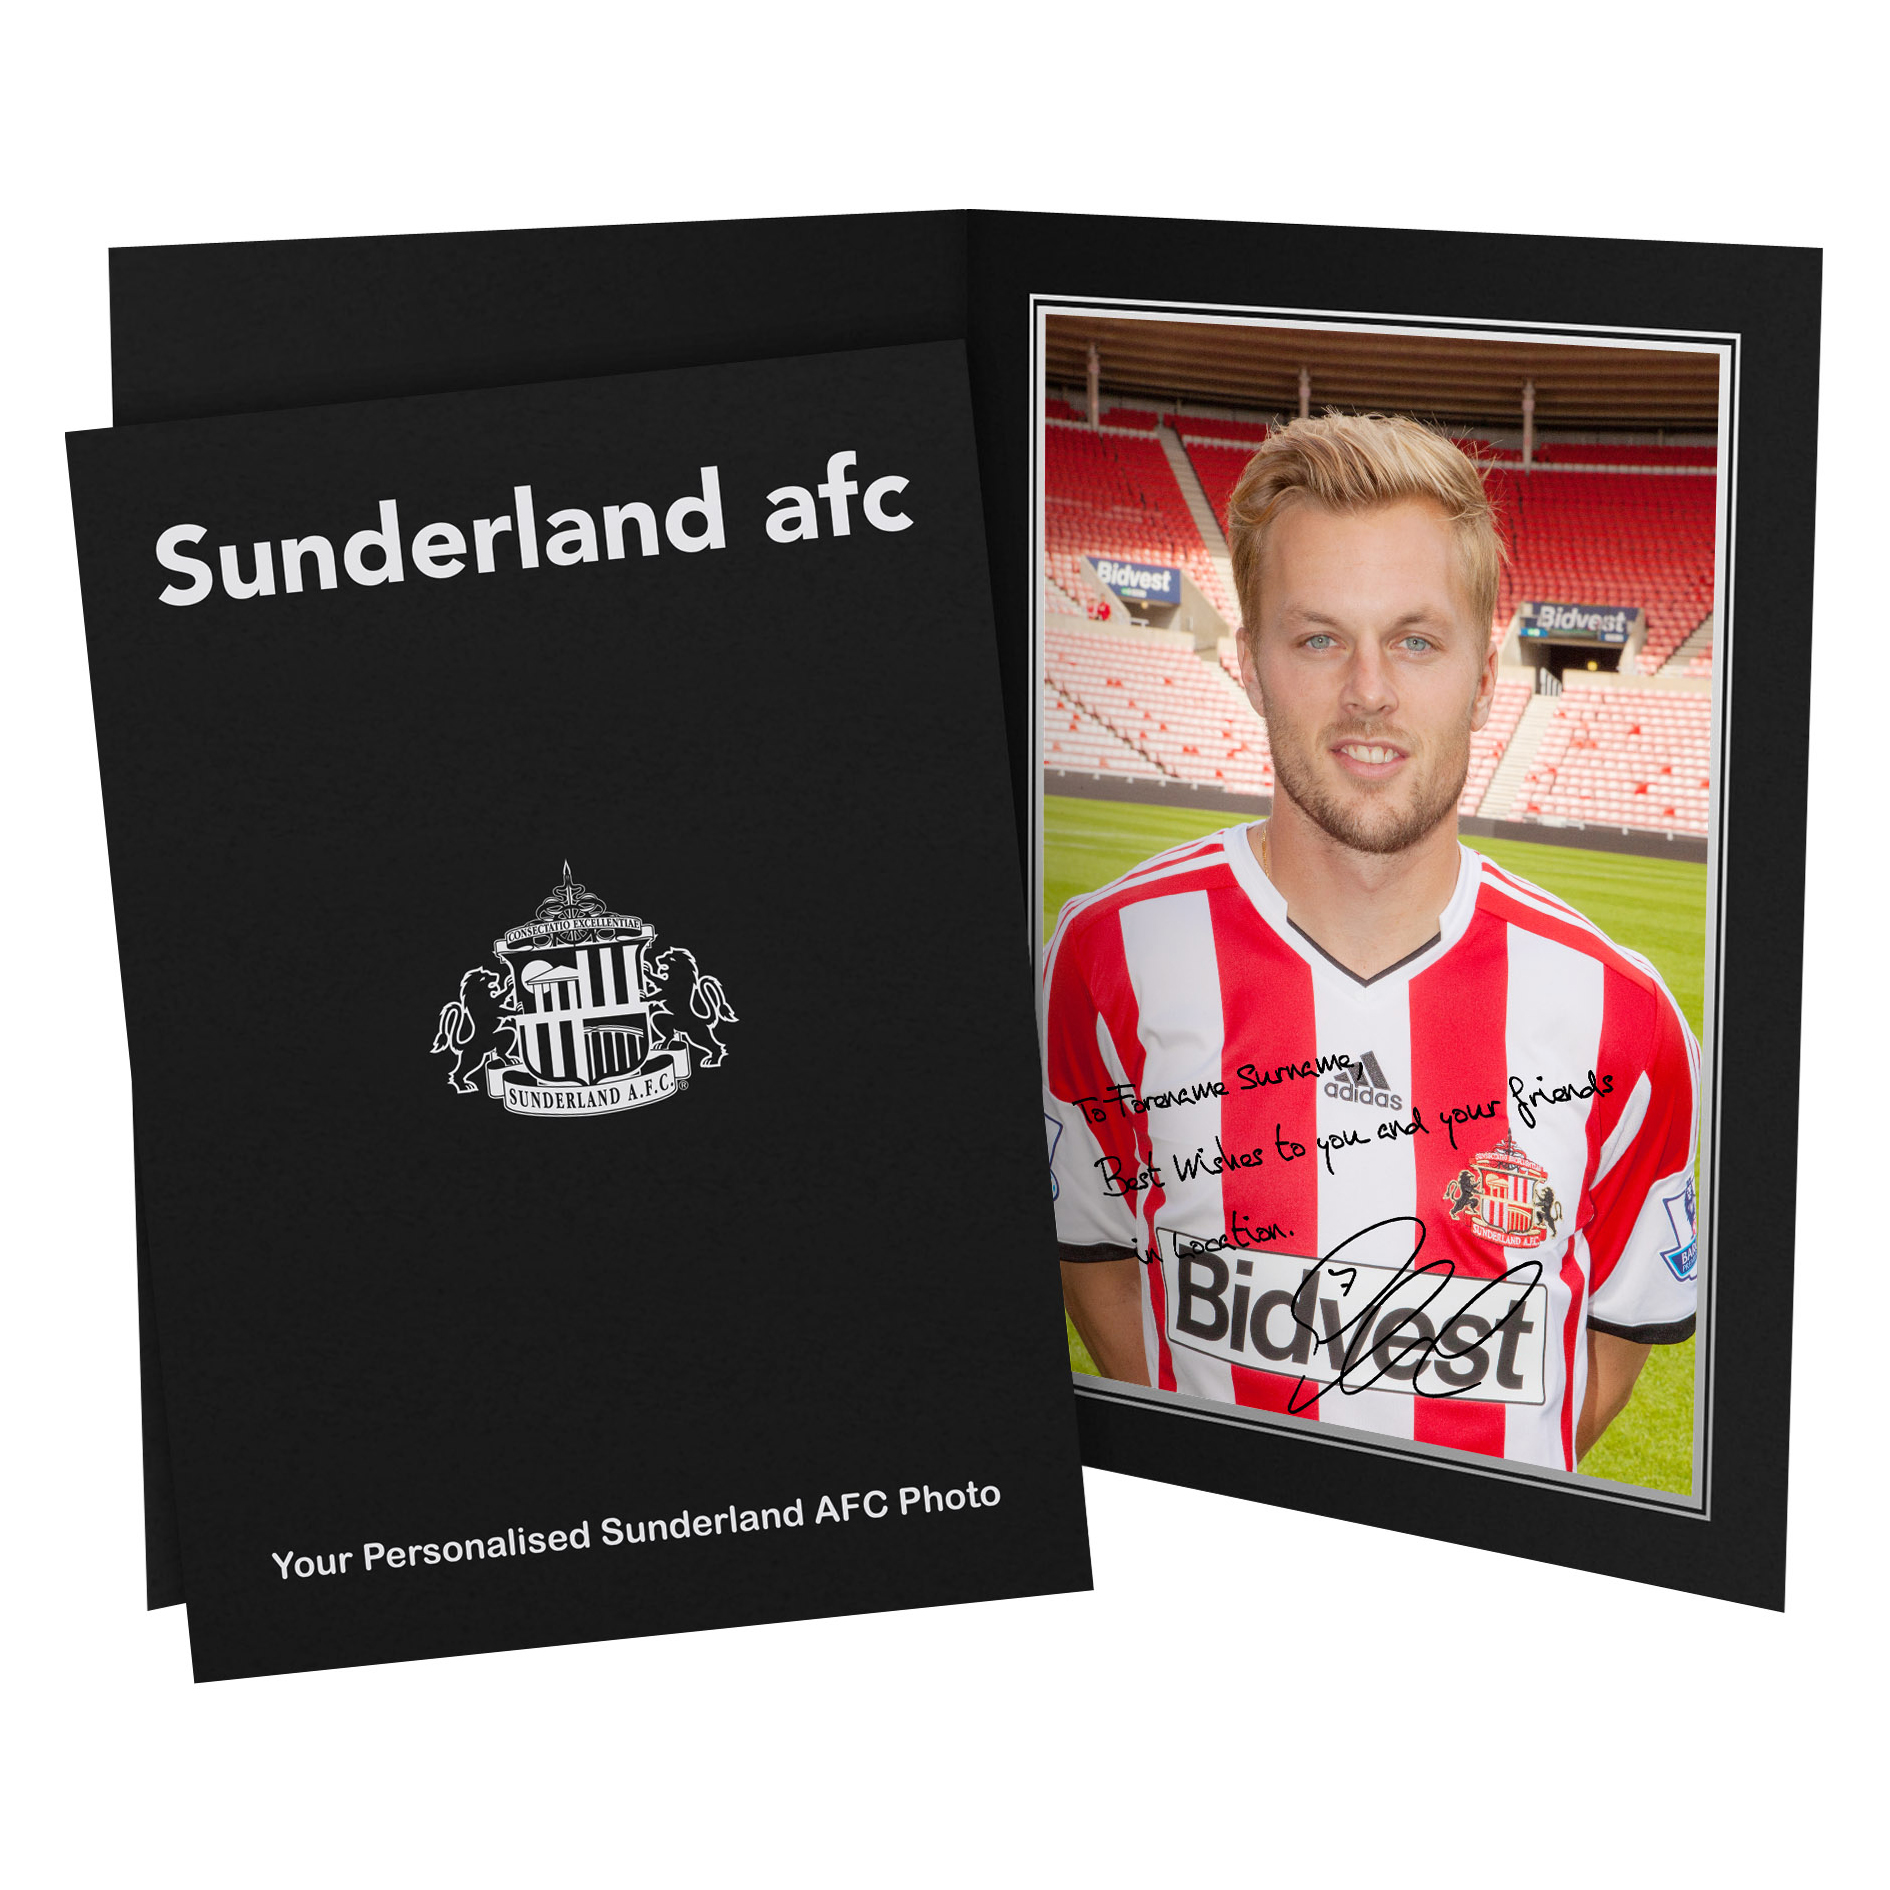 Sunderland Personalised Signature Photo in Presentation Folder -Larsson